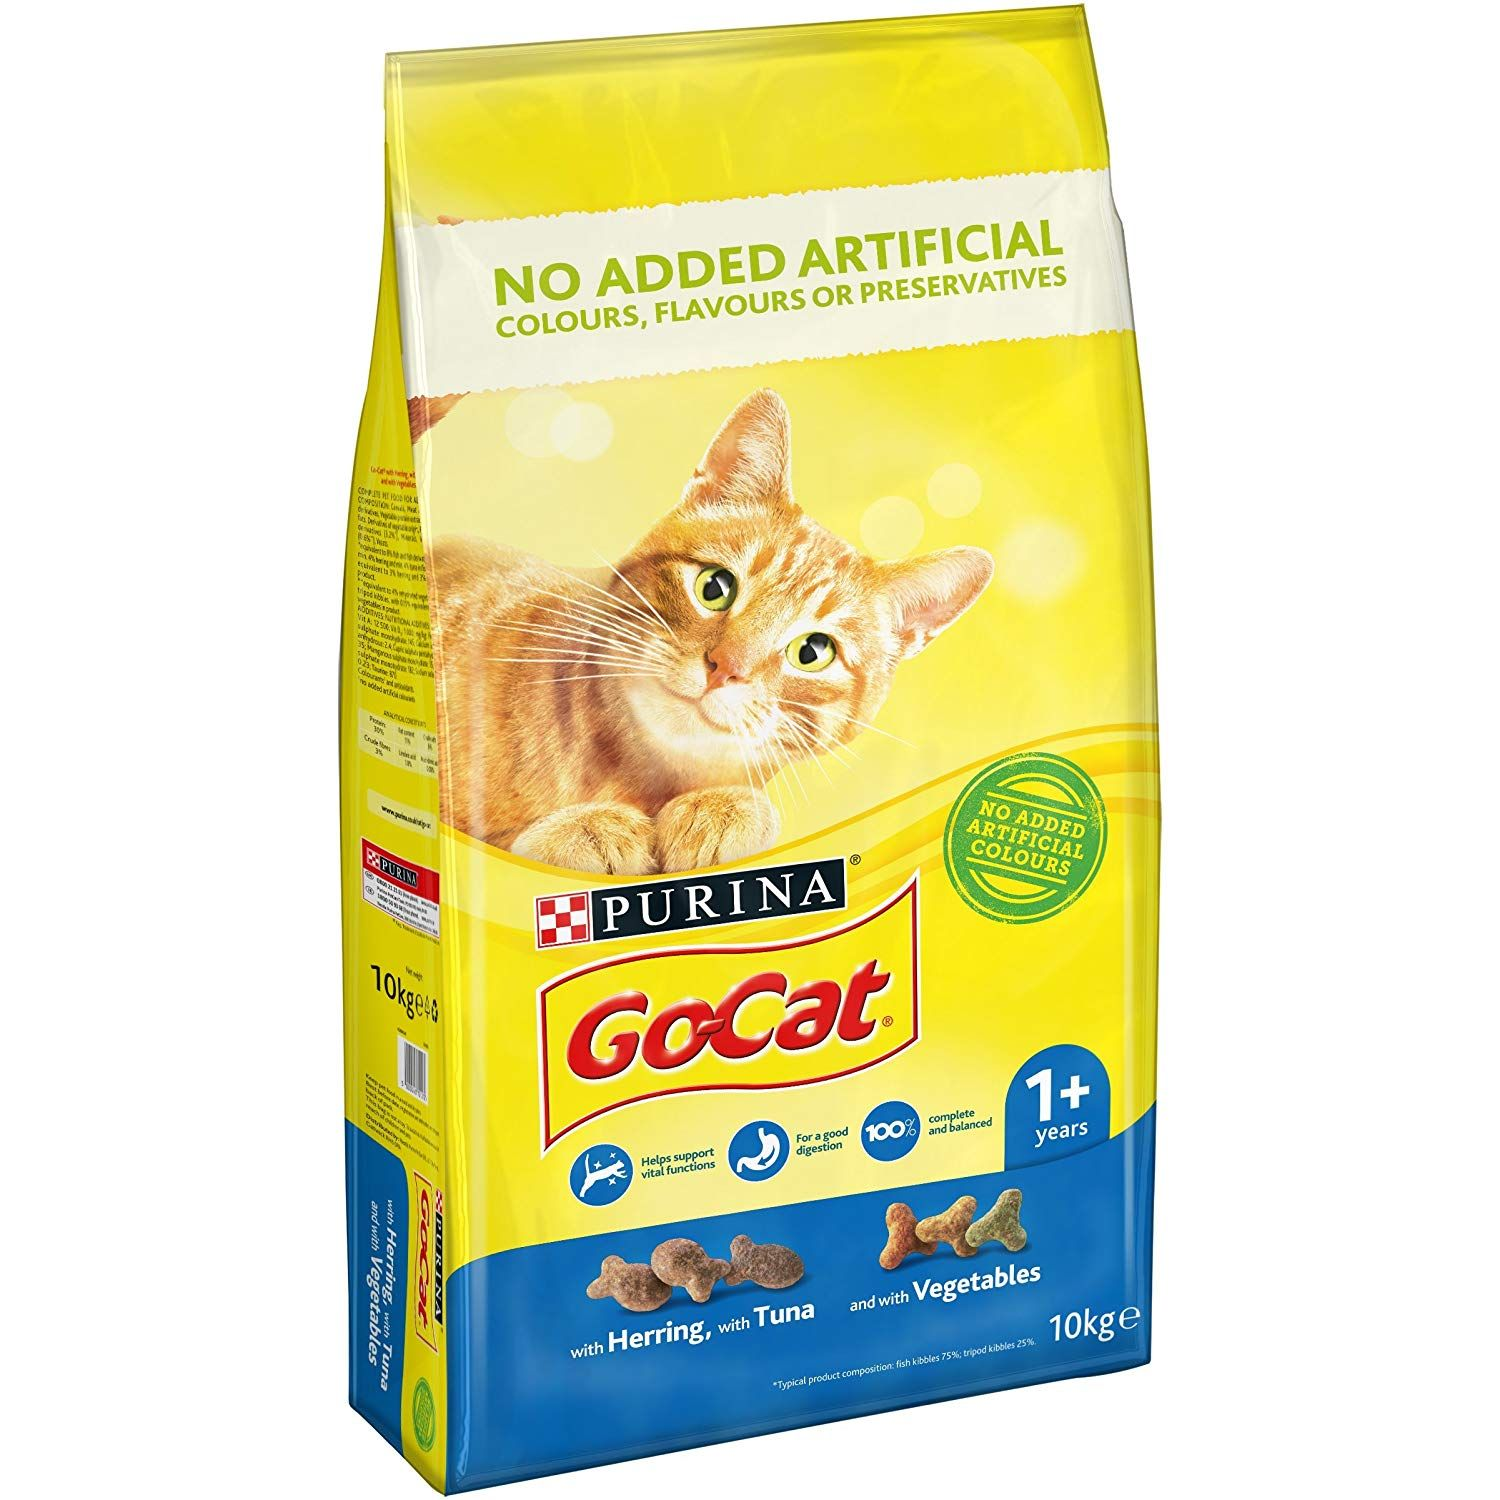 Go Cat Adult Cat Food Tuna Herring And Veg 10kg With Go Cat Adult Cat Food Wonderful Of Your Presence To Drop By To See Dry Cat Food Cat Food Pet